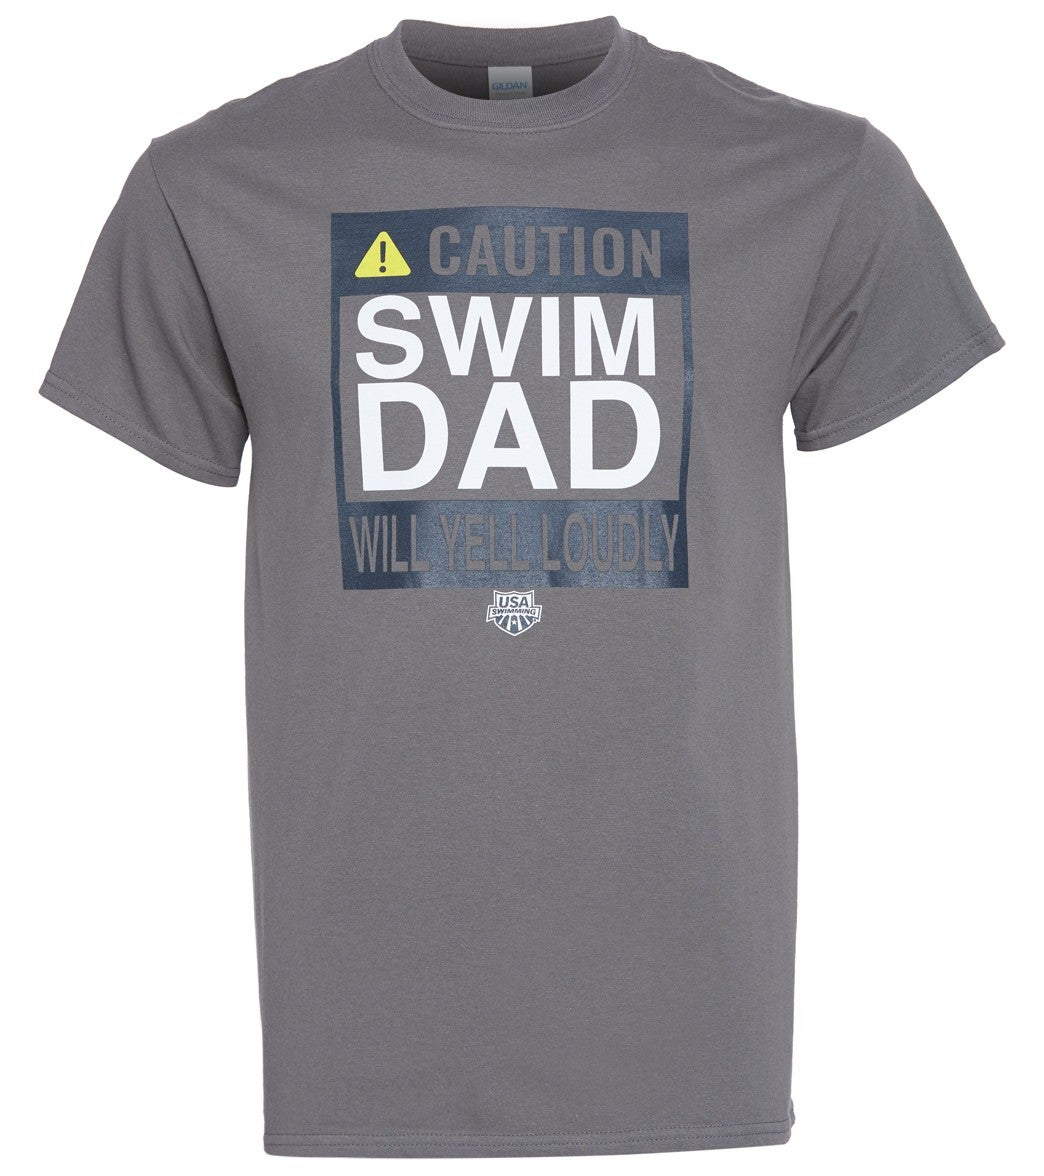 For the Swim Dad in the family, this charcoal grey tee is both stylish and funny recognizing Swim Dads for what they truly are 'Our No.1 Fans!'|https://www.swimoutlet.com/p/usa-swimming-mens-swim-dad-caution-c-neck-t-shirt-8188292/?color=28951|19.95|ftf1